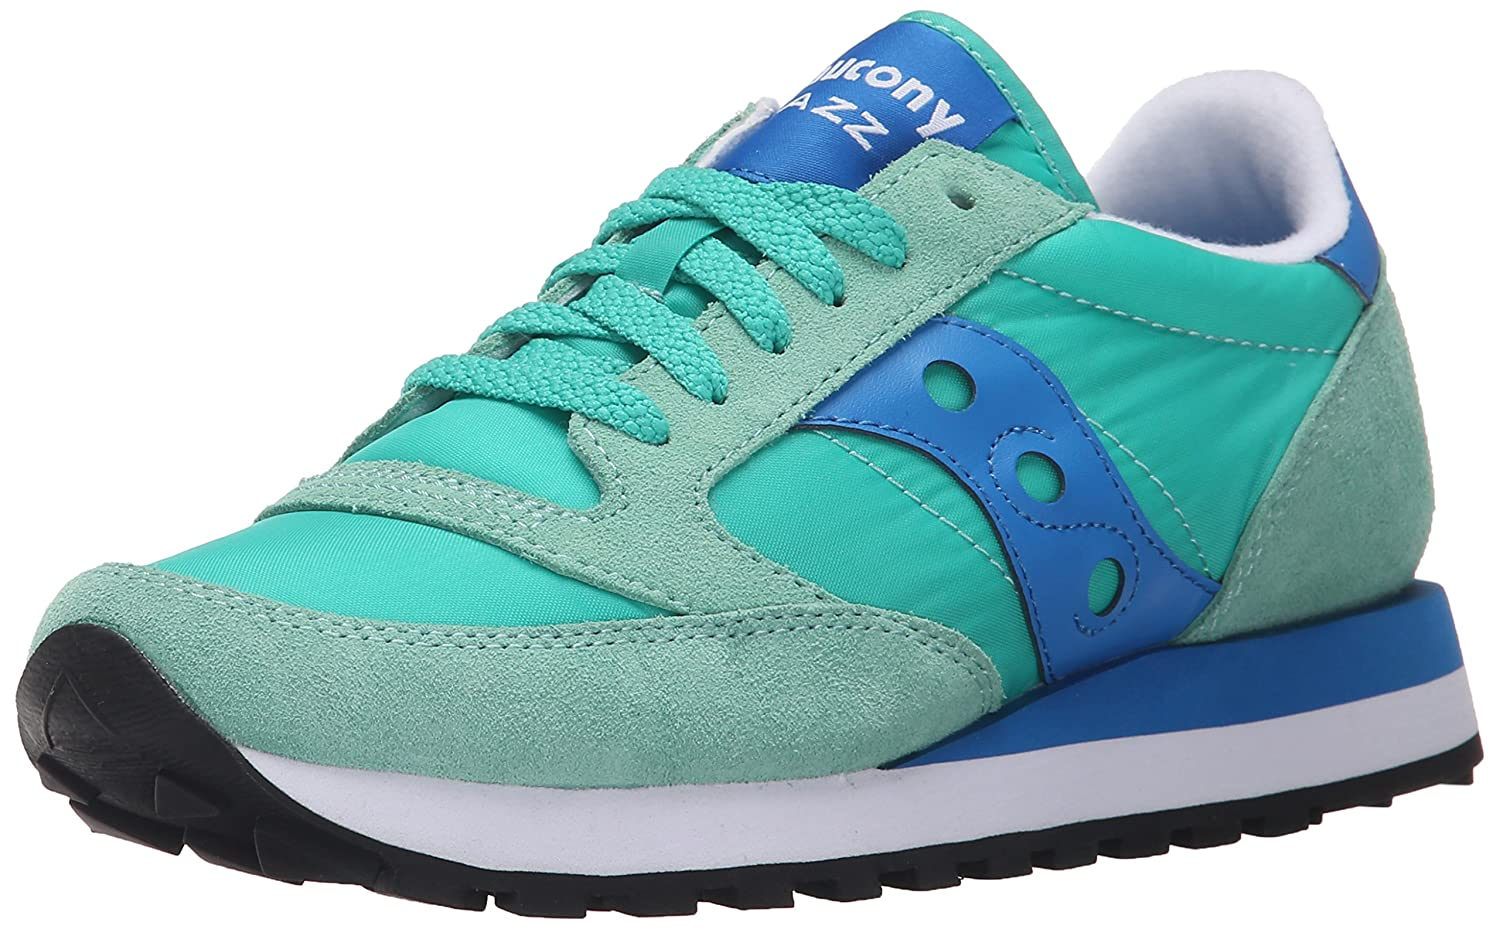 Saucony Originals Women's Jazz Original Sneaker B00XVAB014 8 M US|Light Green/Blue